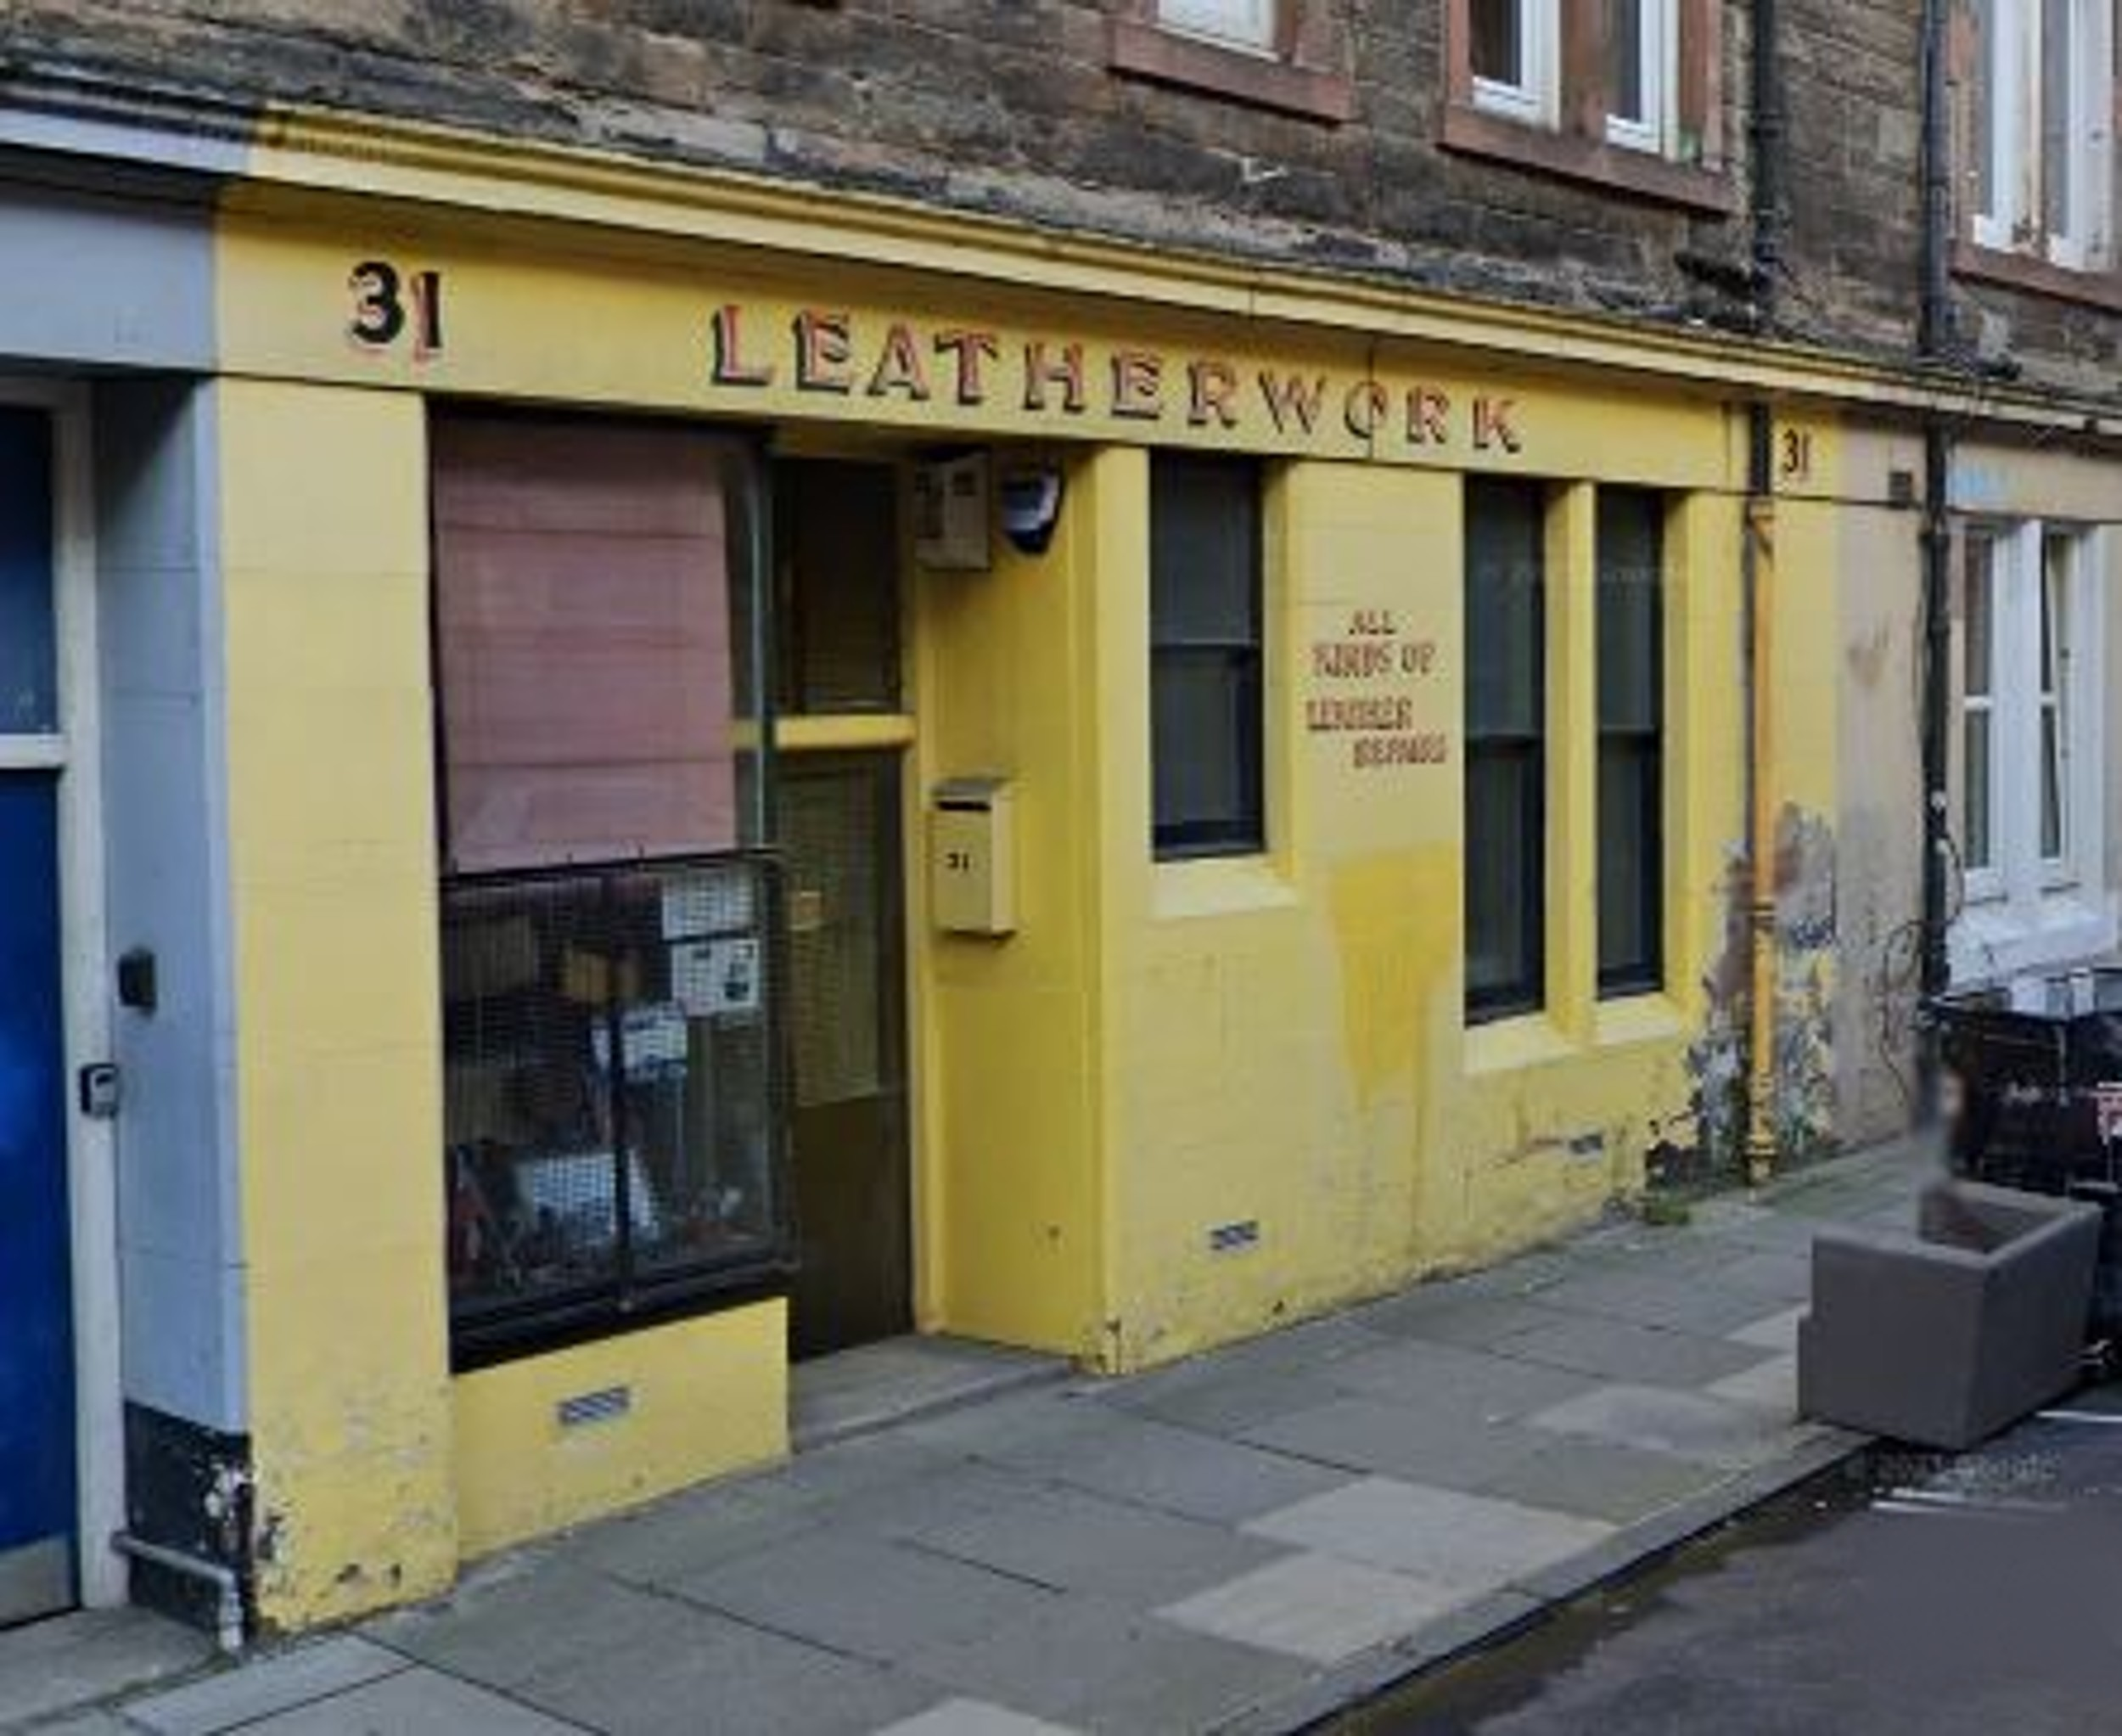 Leatherwork's famous yellow shop front